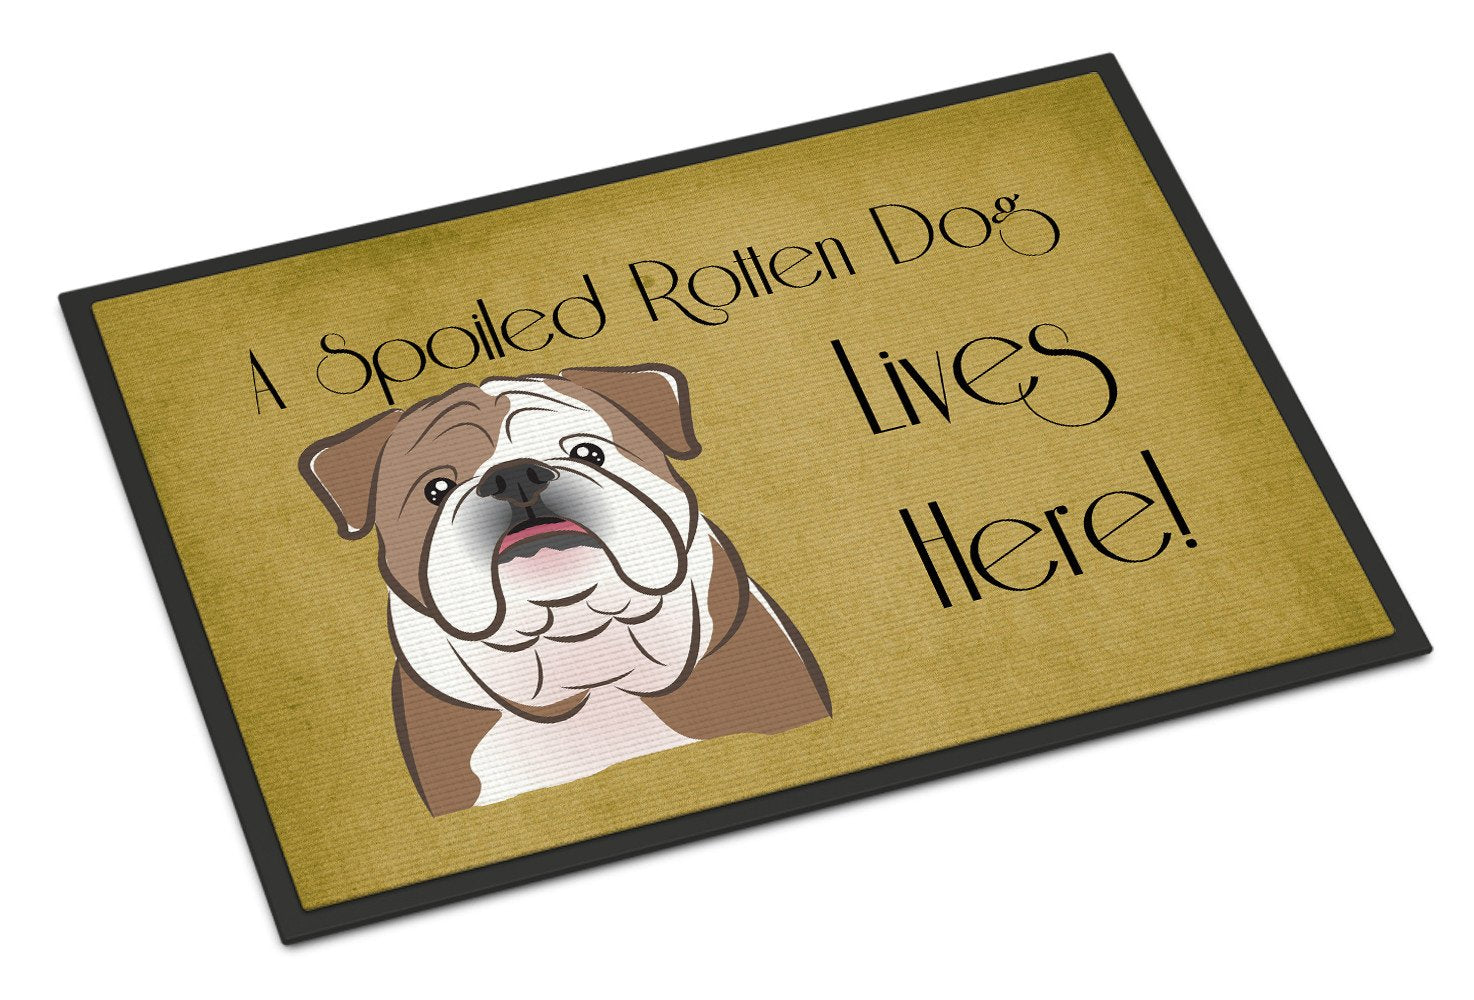 English Bulldog  Spoiled Dog Lives Here Indoor or Outdoor Mat 18x27 BB1467MAT - the-store.com